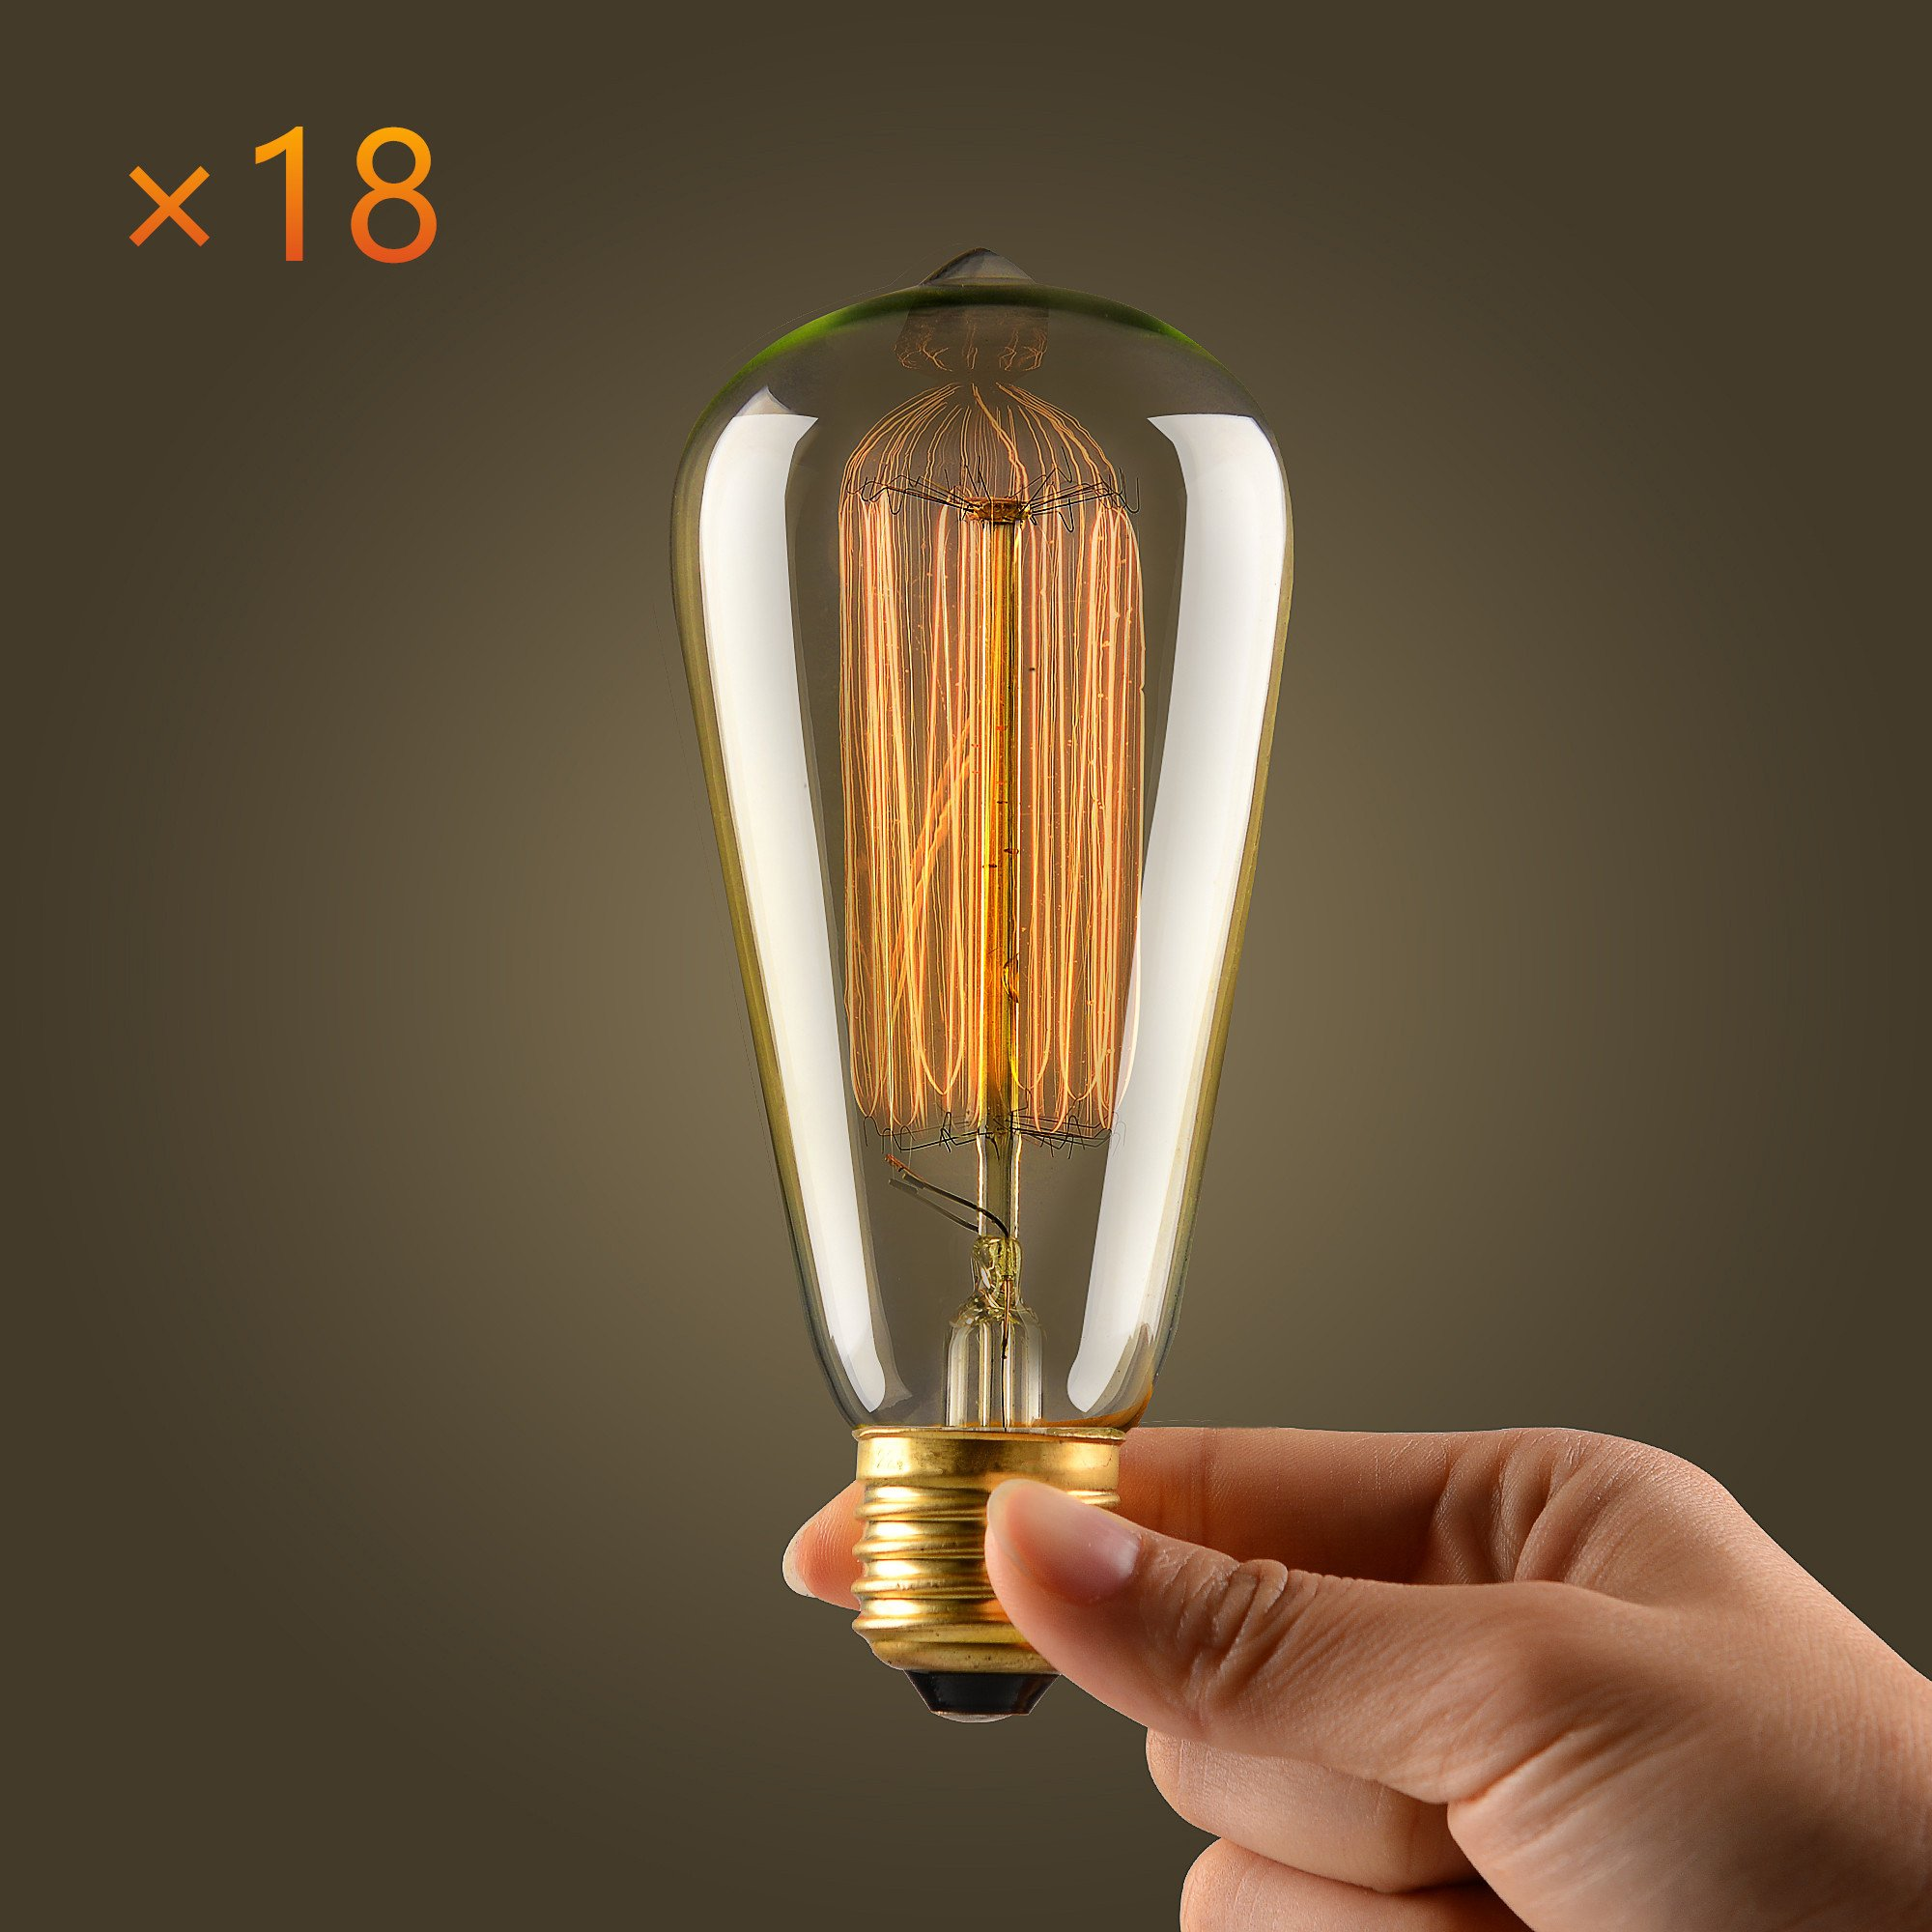 mirrea Vintage Edison Bulb - 18 Pack - ST64 - Squirrel Cage Filament - Dimmable